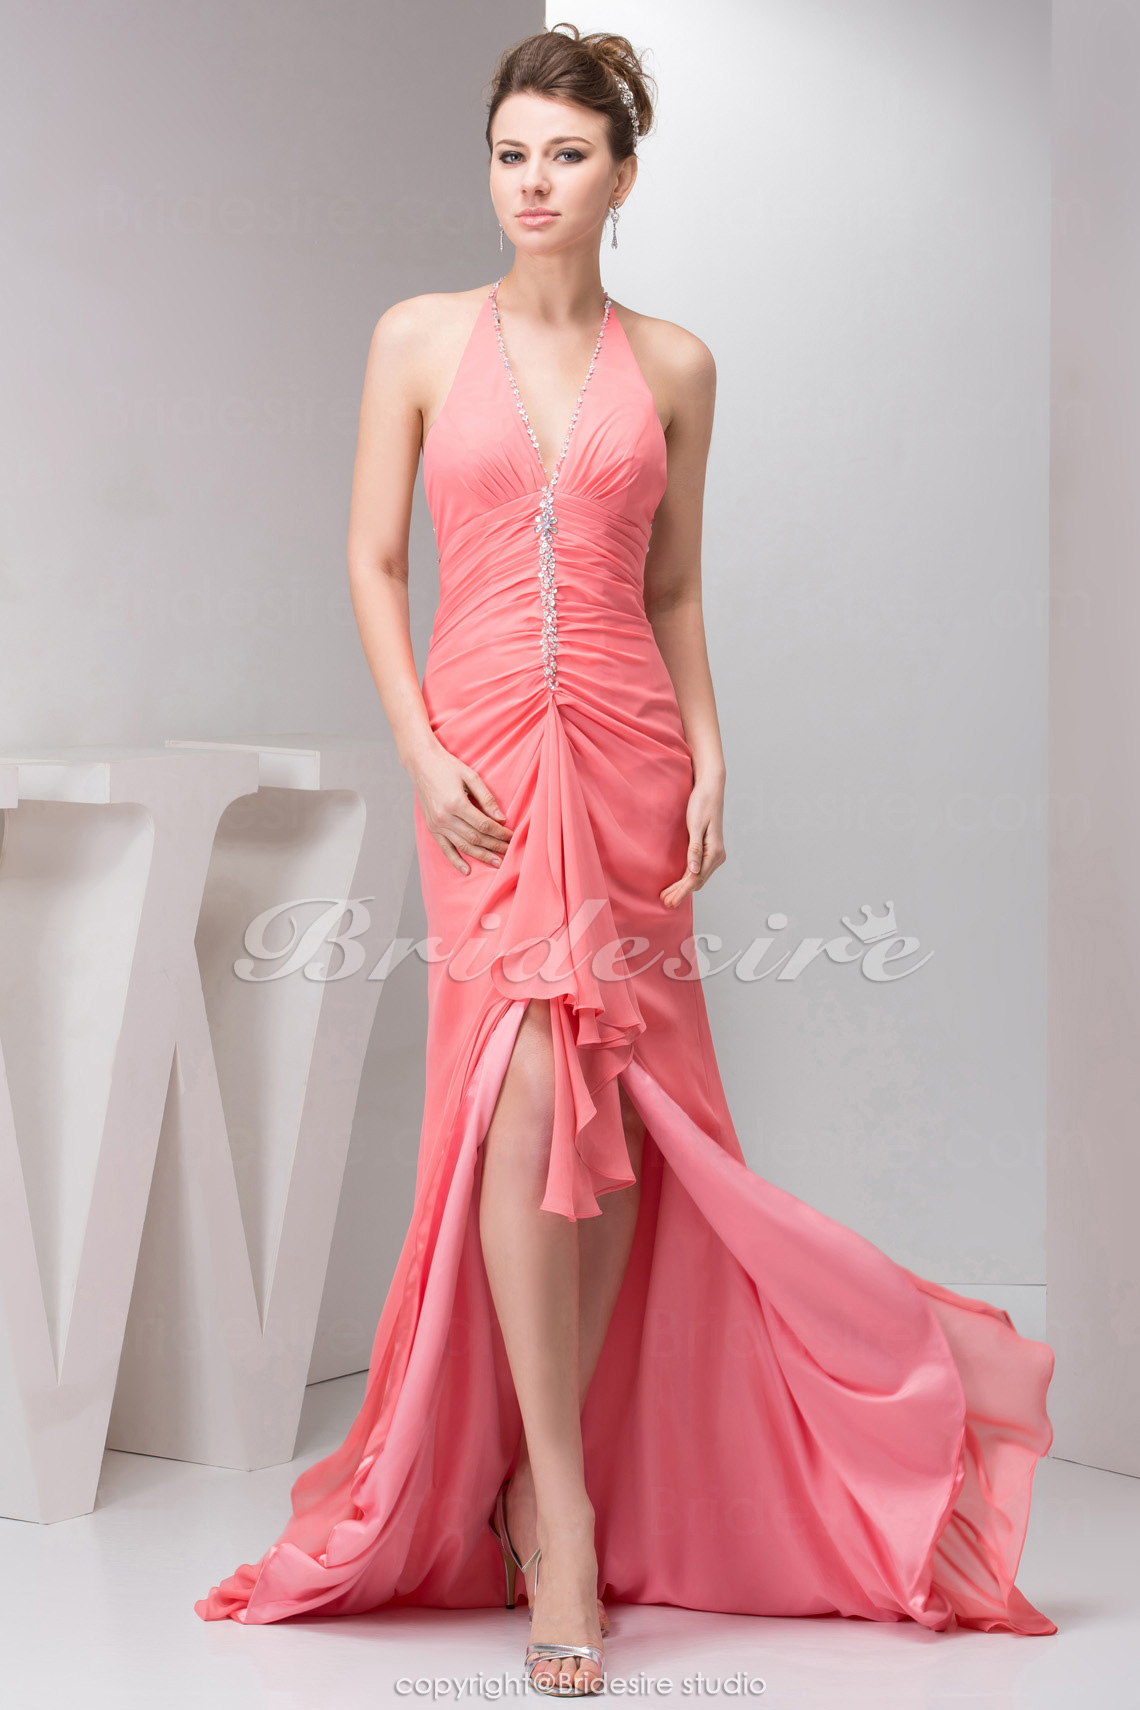 Sheath/Column Halter Sweep Train Sleeveless Chiffon Dress